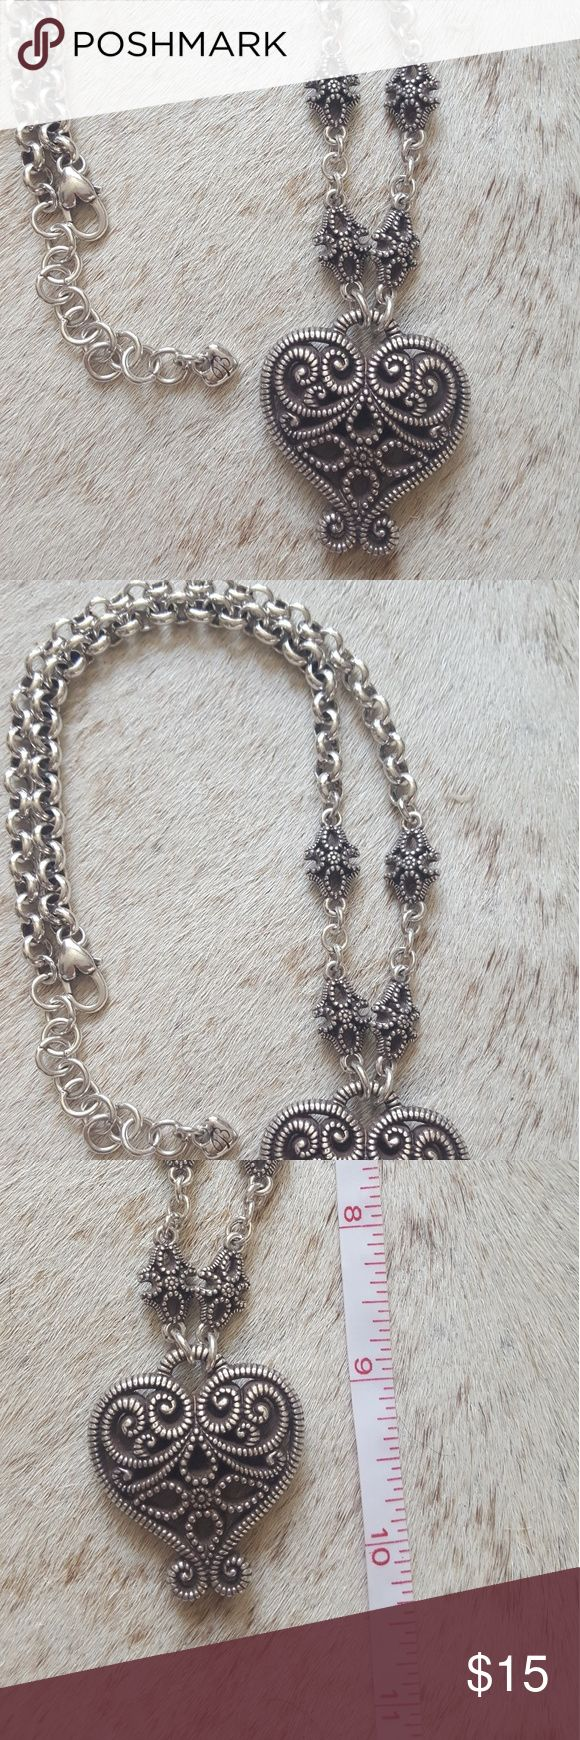 Silver heart necklace Very pretty, worn once. Love the chair but I'm not into hearts any longer.  Looks like Brighton. Jewelry Necklaces